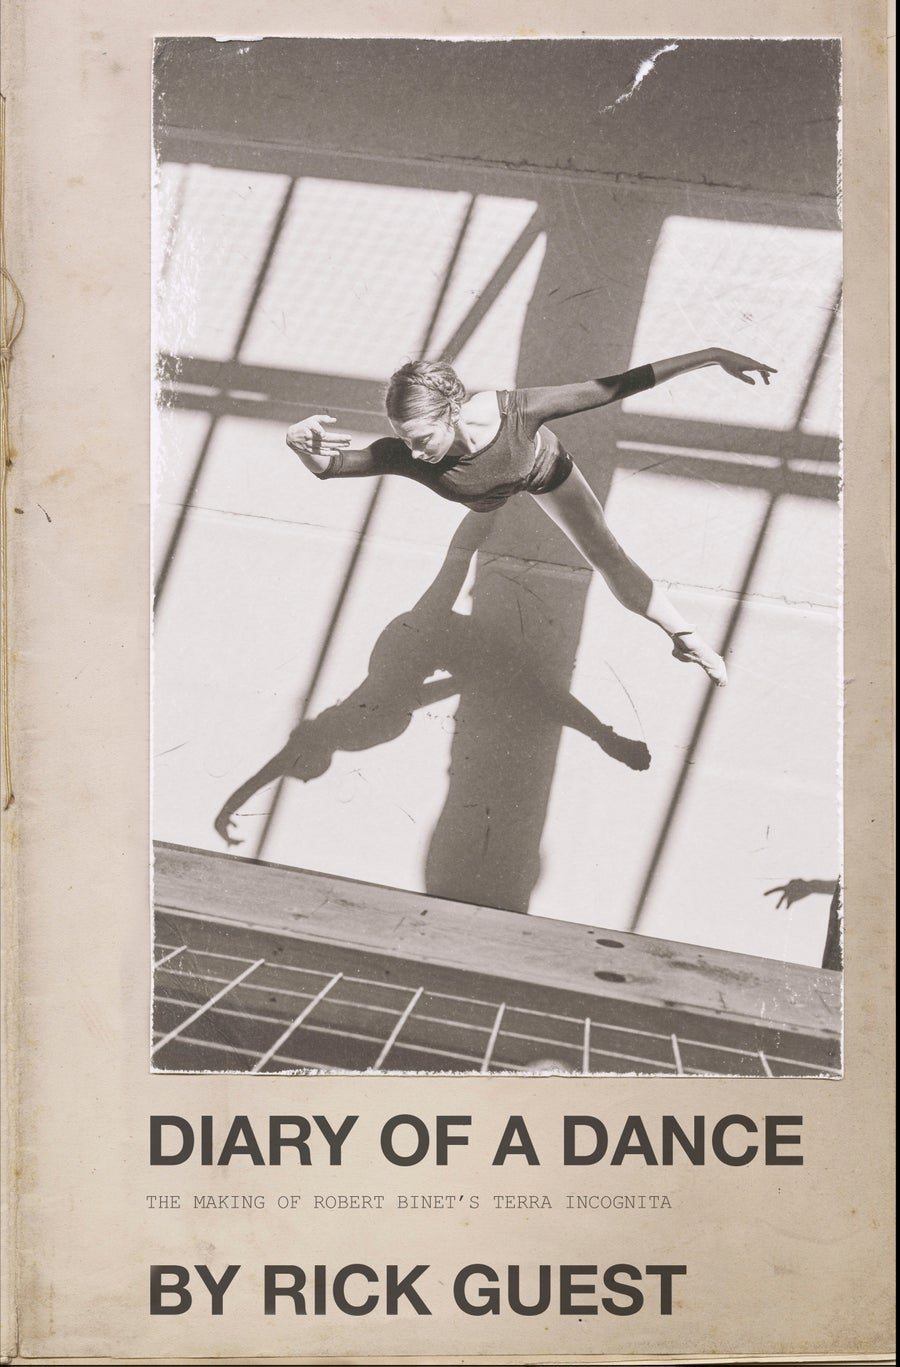 Image of Diary of a Dance - The Making of Robert Binet's Terra Incognita